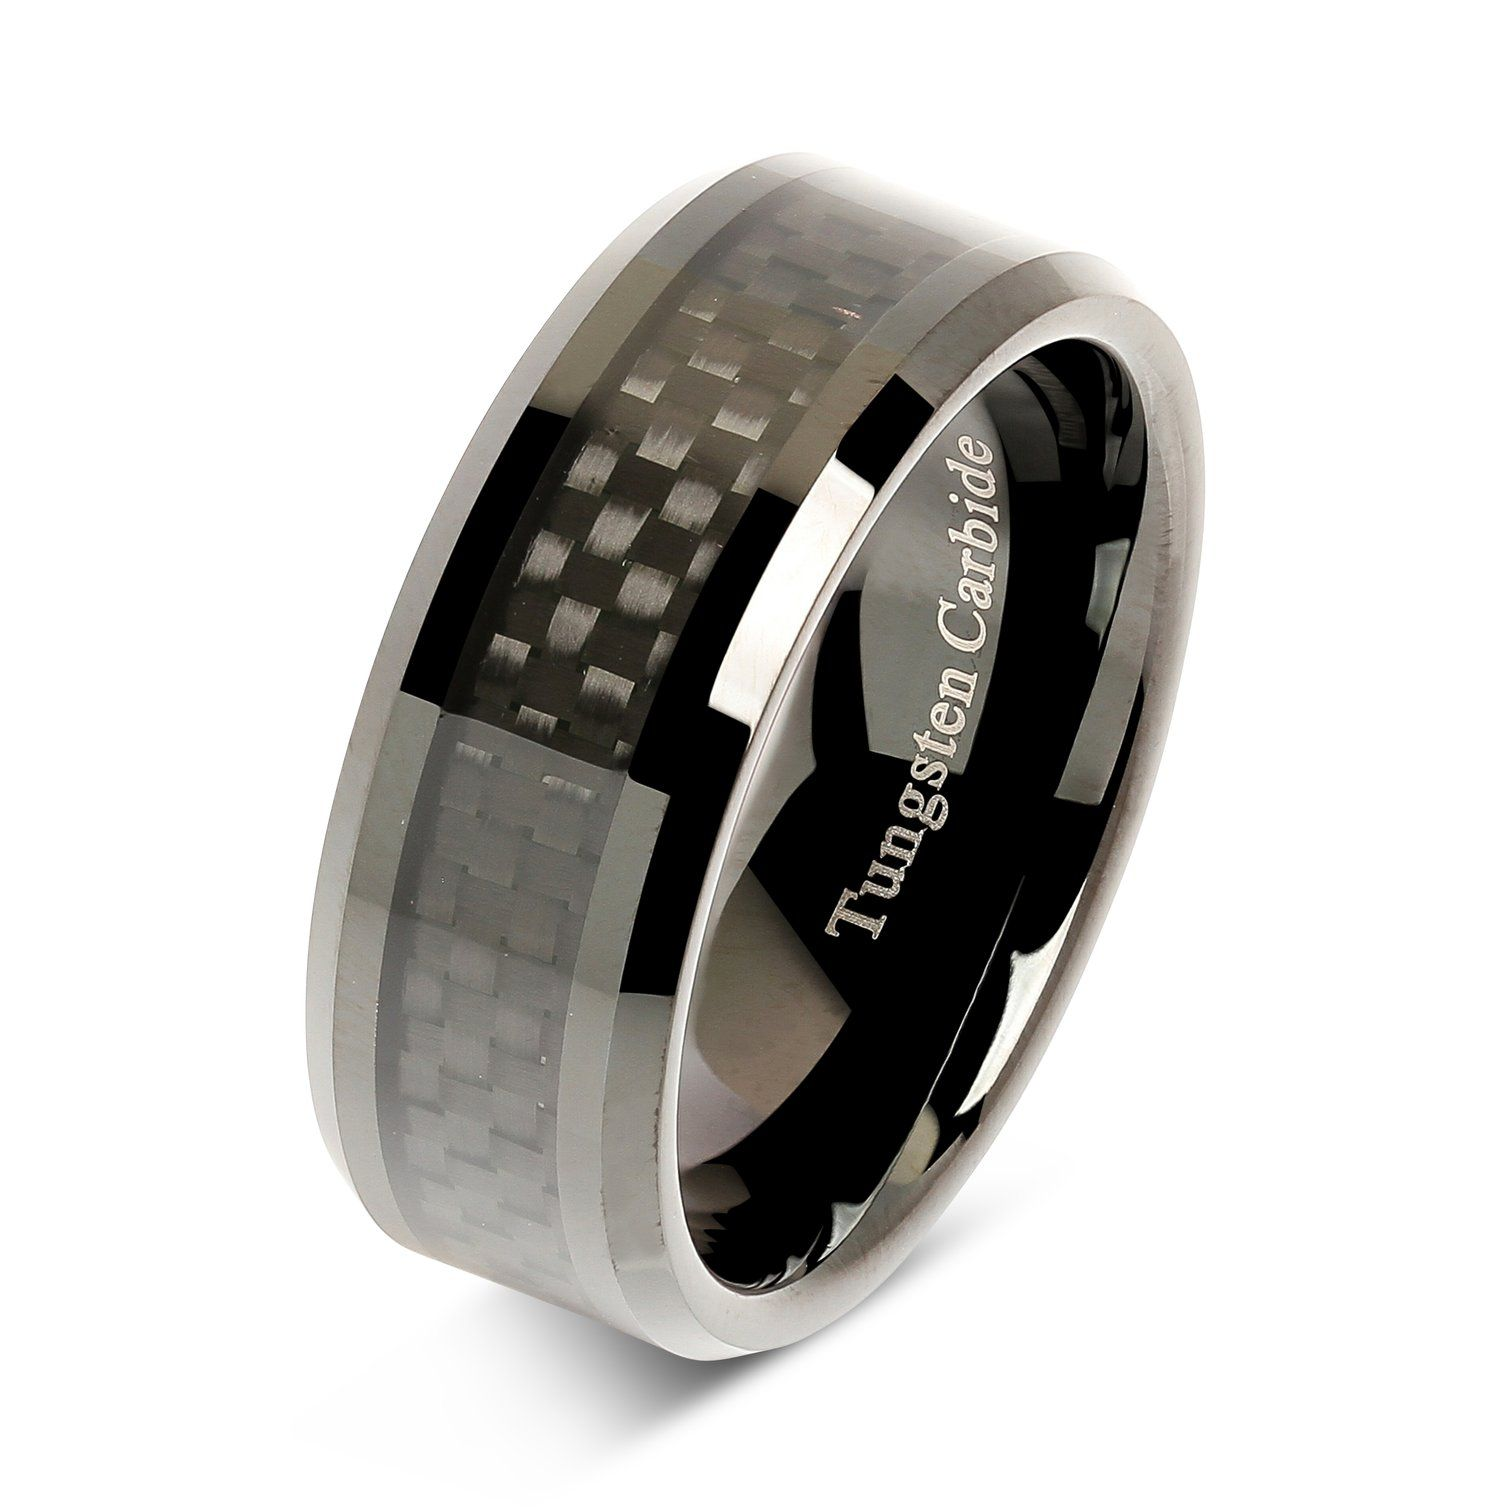 8mm Tungsten Carbide Ring Carbon Fiber Inlay Black Plated